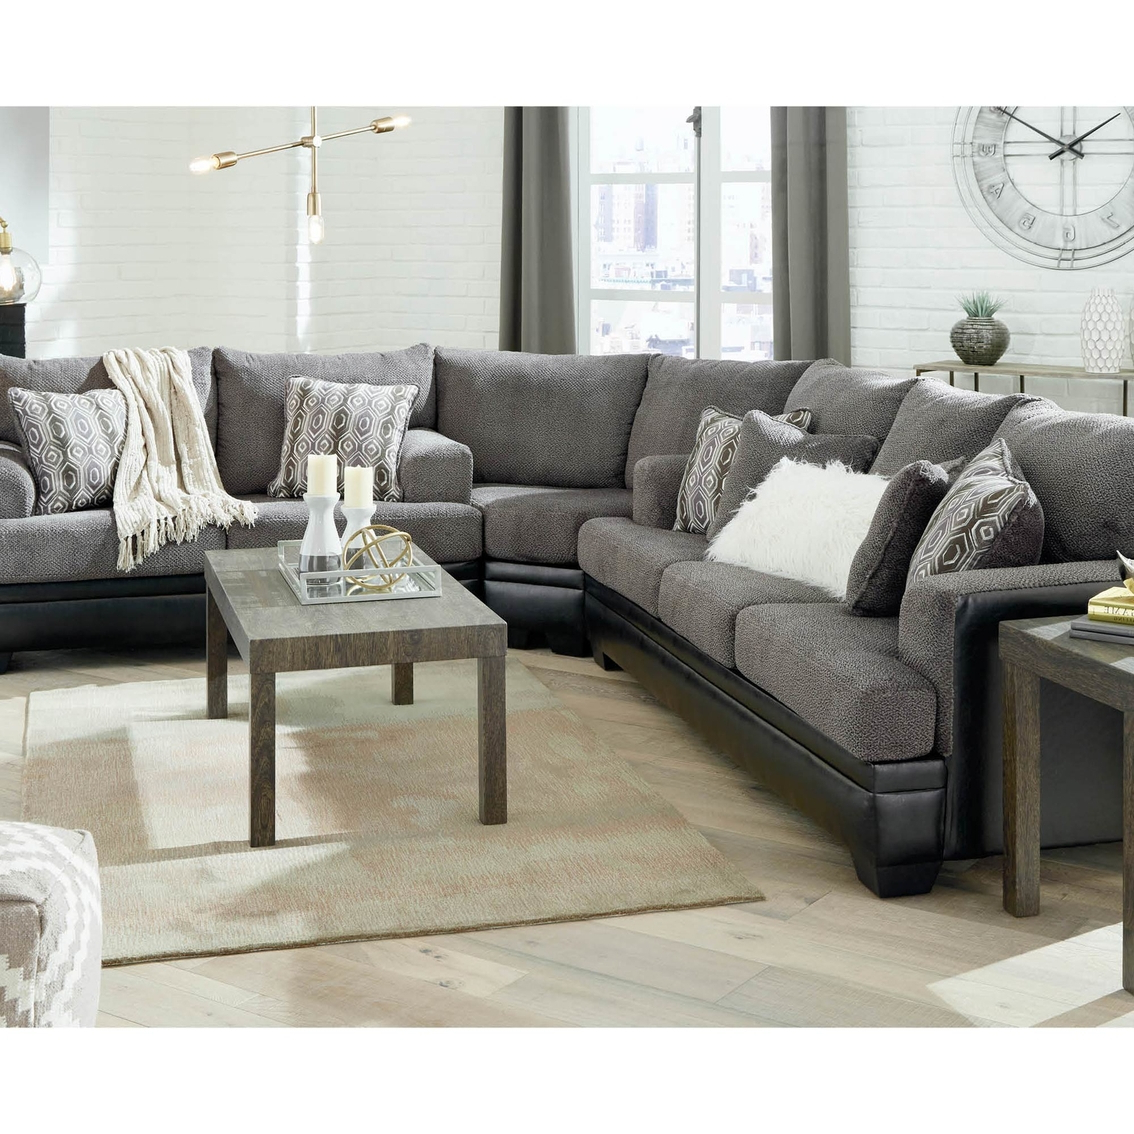 Most Recently Released Turdur 3 Piece Sectionals With Raf Loveseat Pertaining To Sectional Couch Vs Sofa And Loveseat – Blog Avie (View 20 of 20)